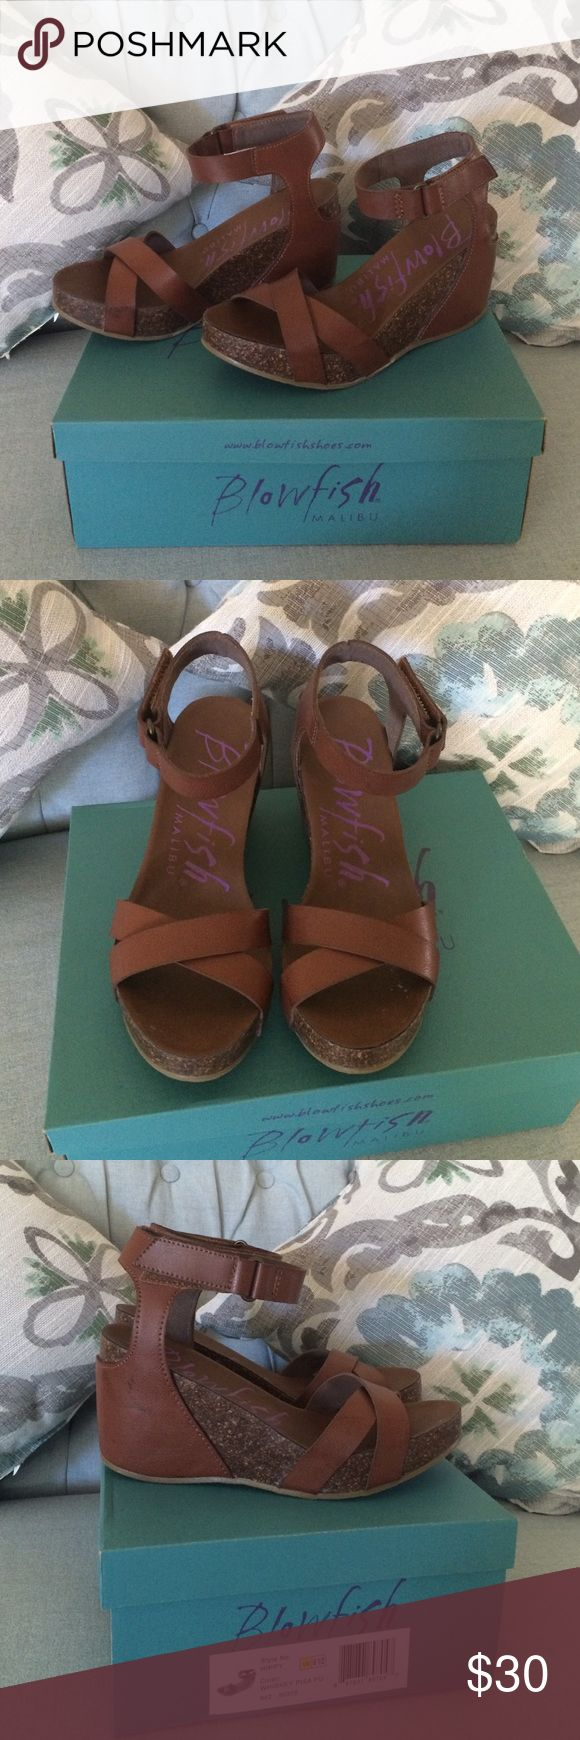 Beautiful & comfortable wedges! These are prefect for summer! So comfortable and so cute! These were worn a total of 3 times. They come in the box and are ready for a home that will love them more than I have. Blowfish Shoes Wedges